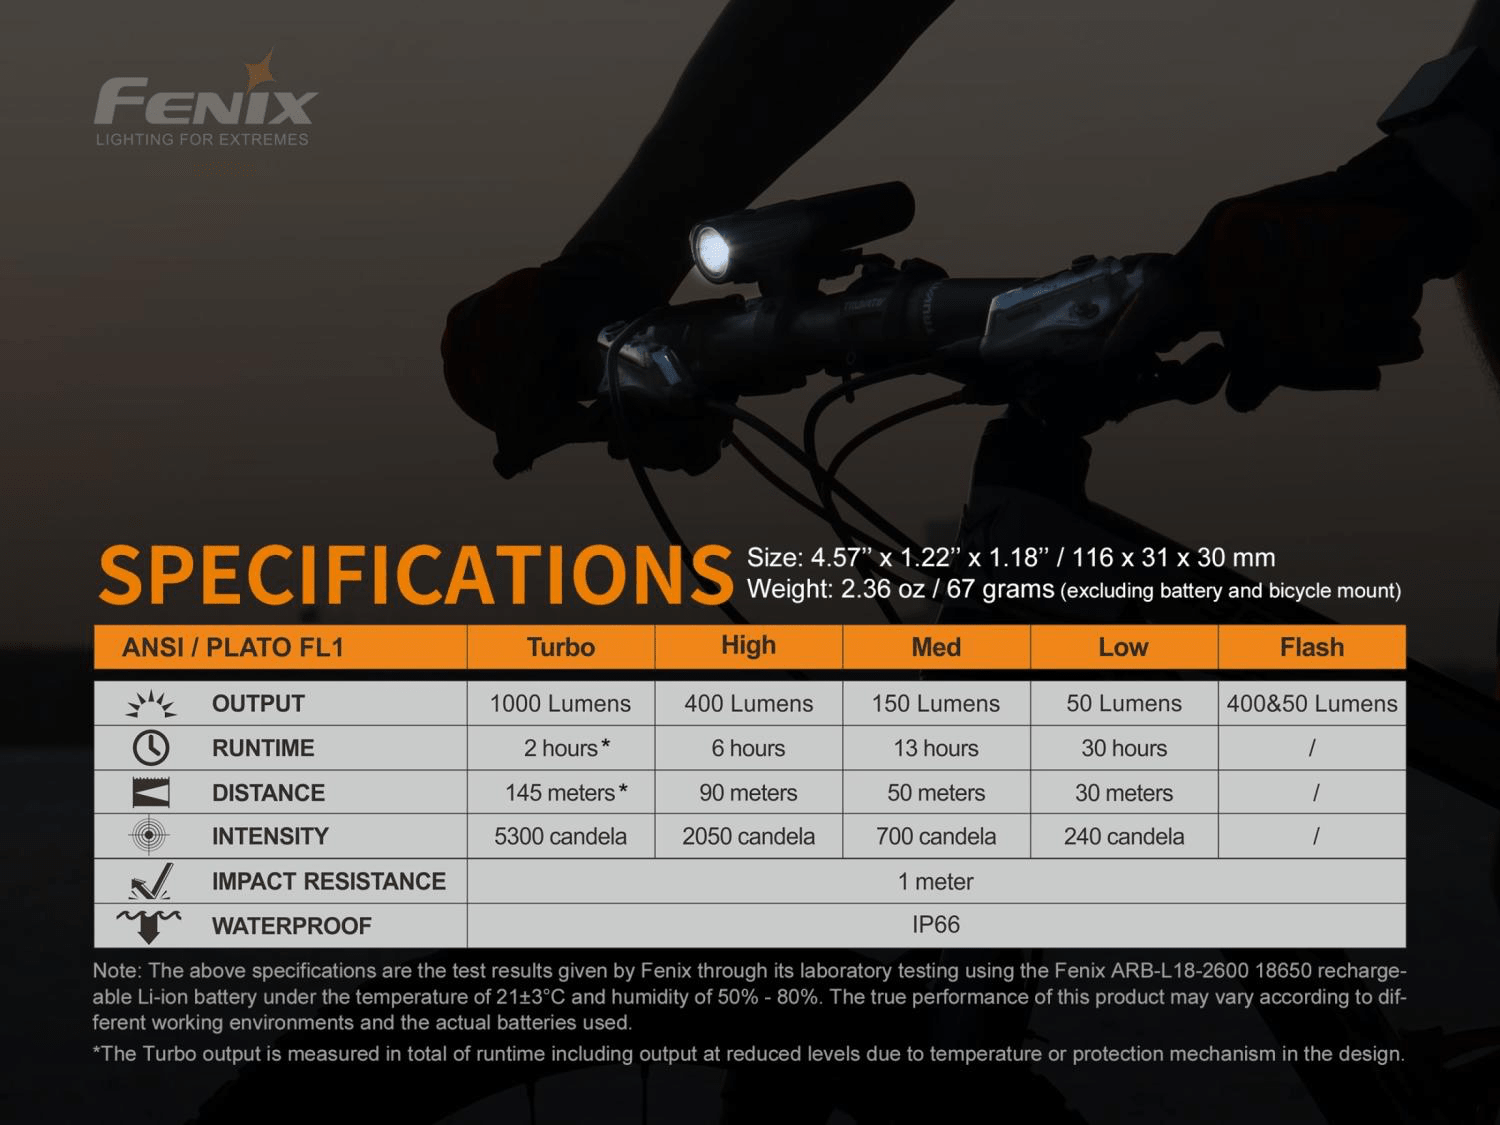 Fenix BC21R V2 LED Bike Light, Best Bicycle Light in India, Powerful Rechargeable Compact Bicycle Light in India, Light for Outdoor Cycling